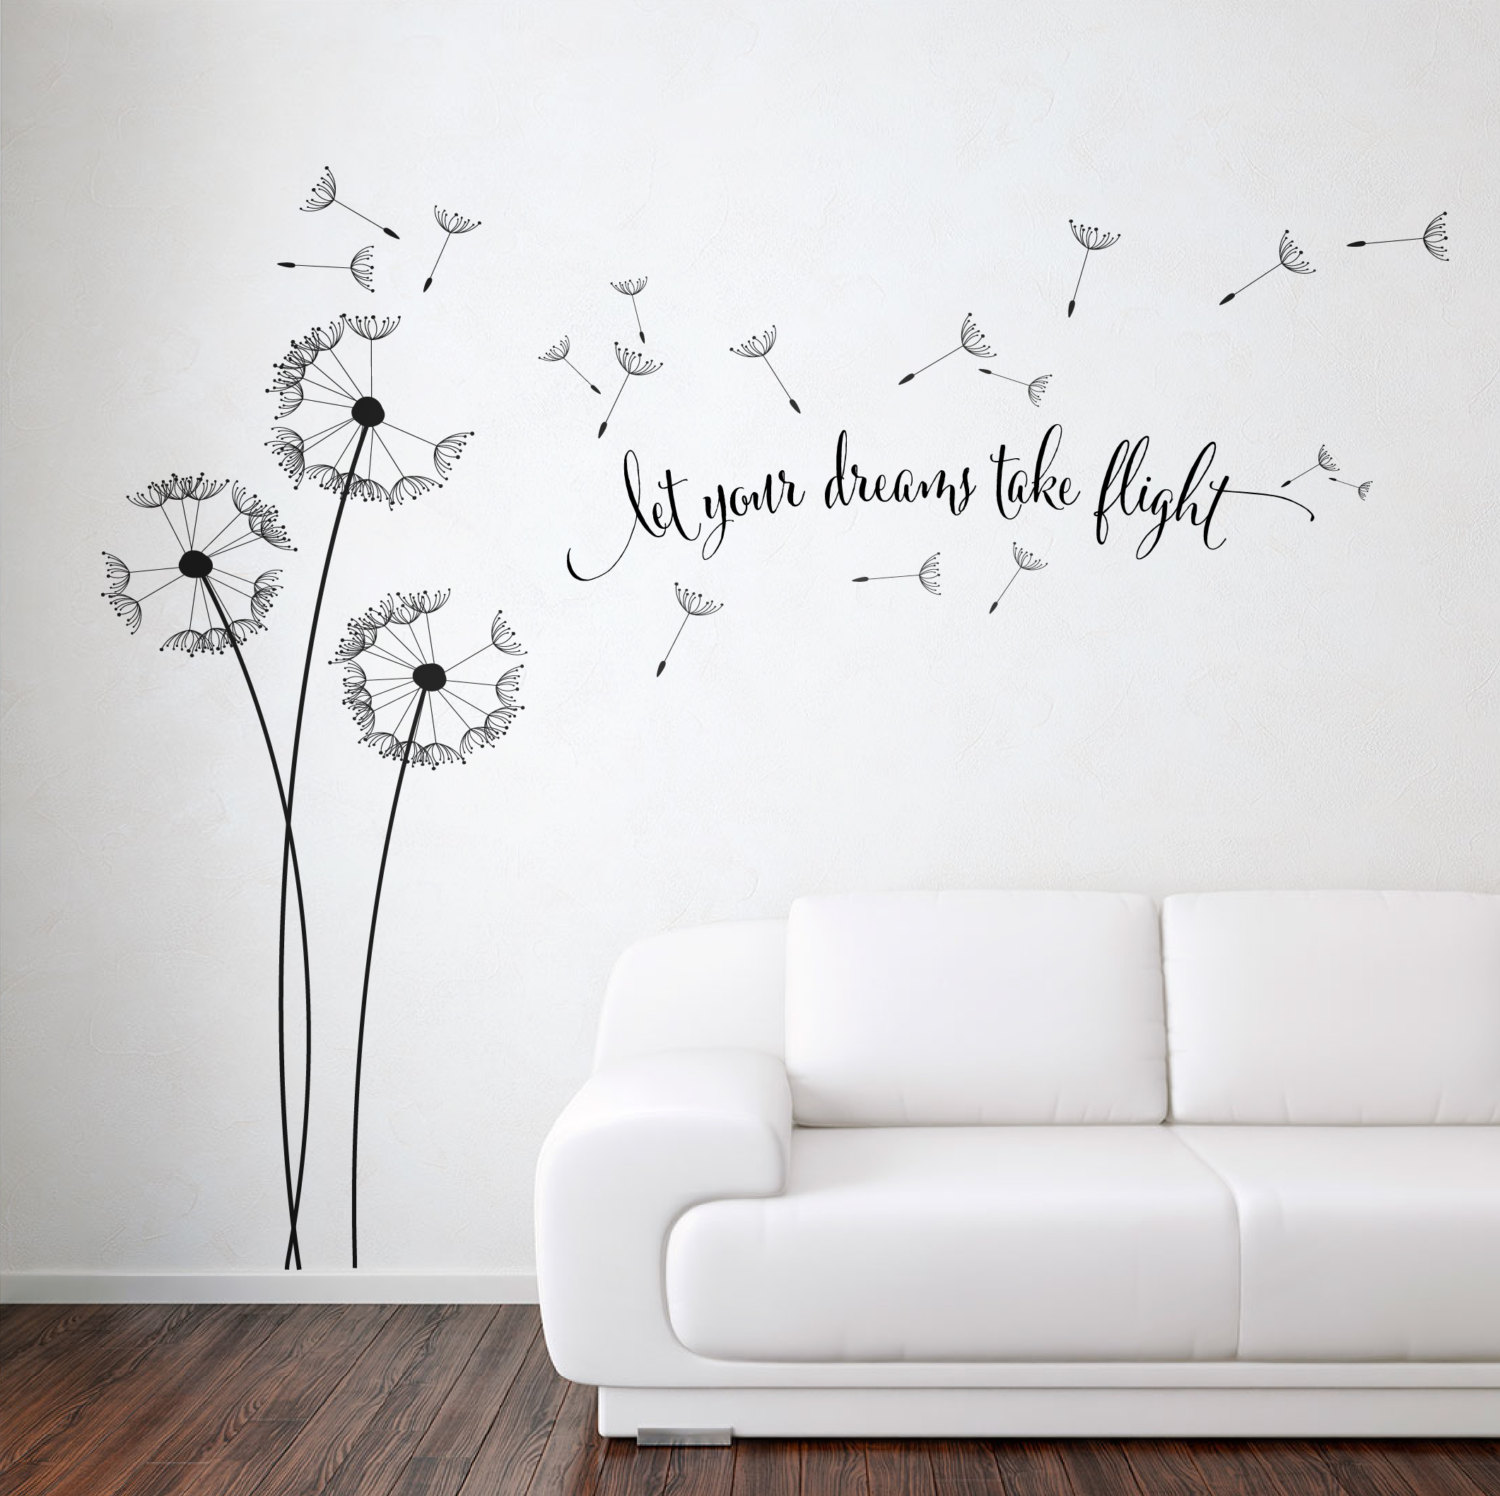 Best Dandelion Blowing With Quote Wall Sticker Floral Sticker This Month